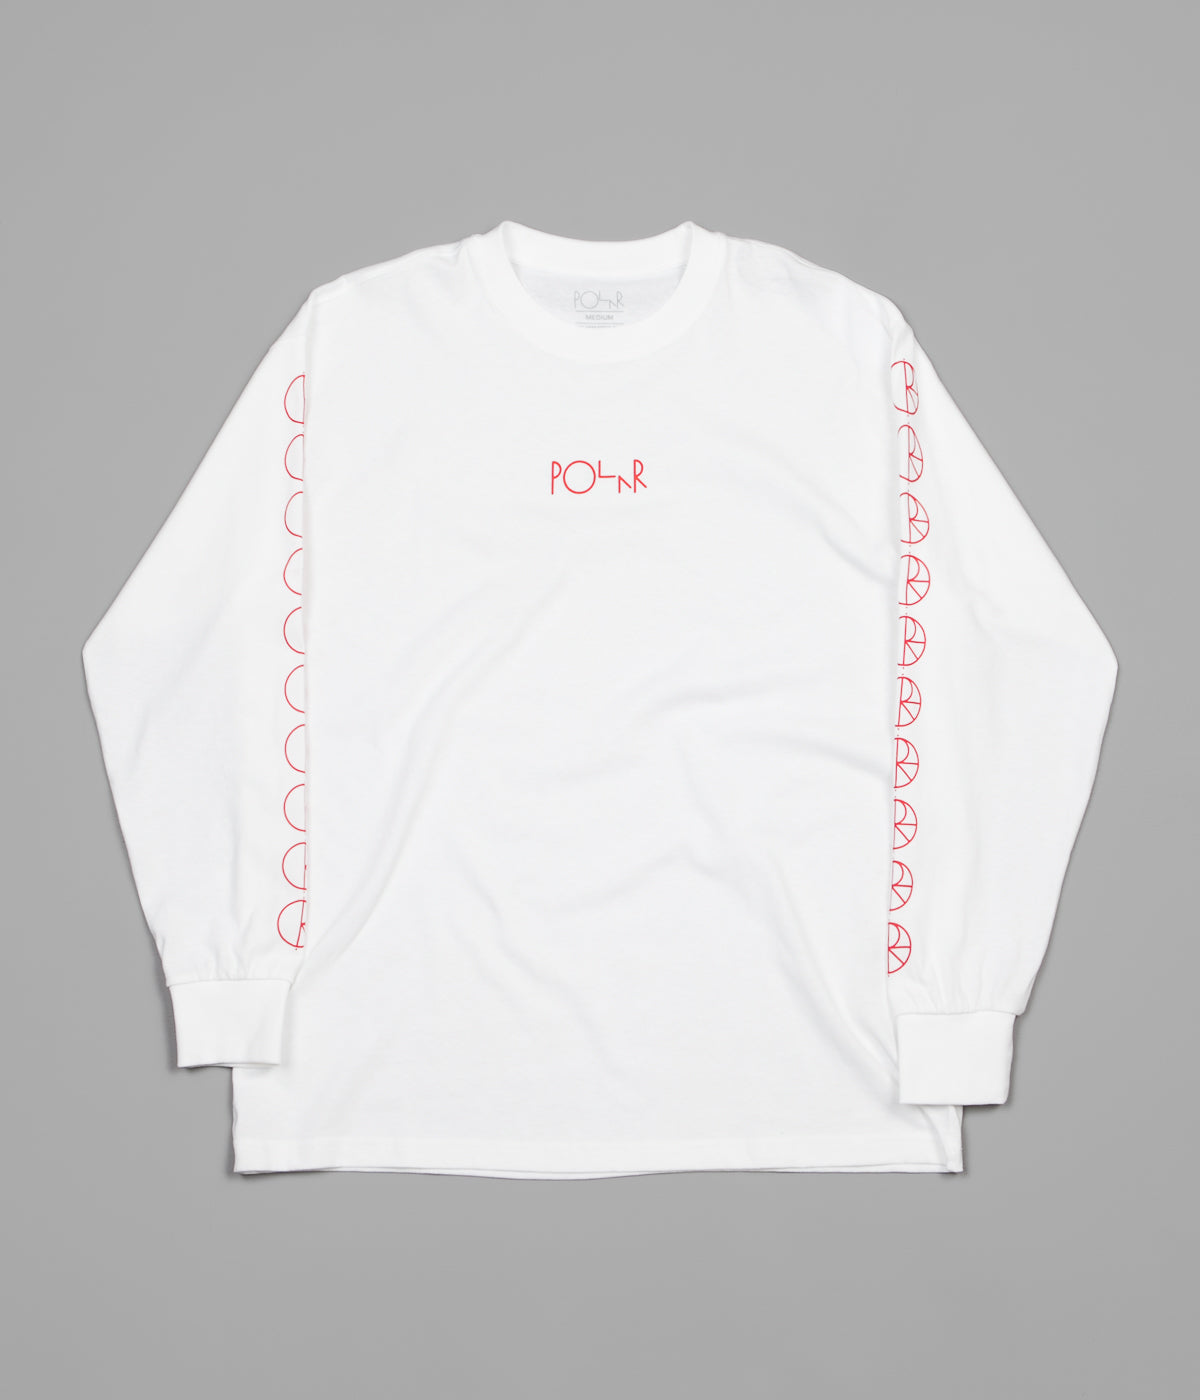 Polar Racing Long Sleeve T-Shirt - White / Red